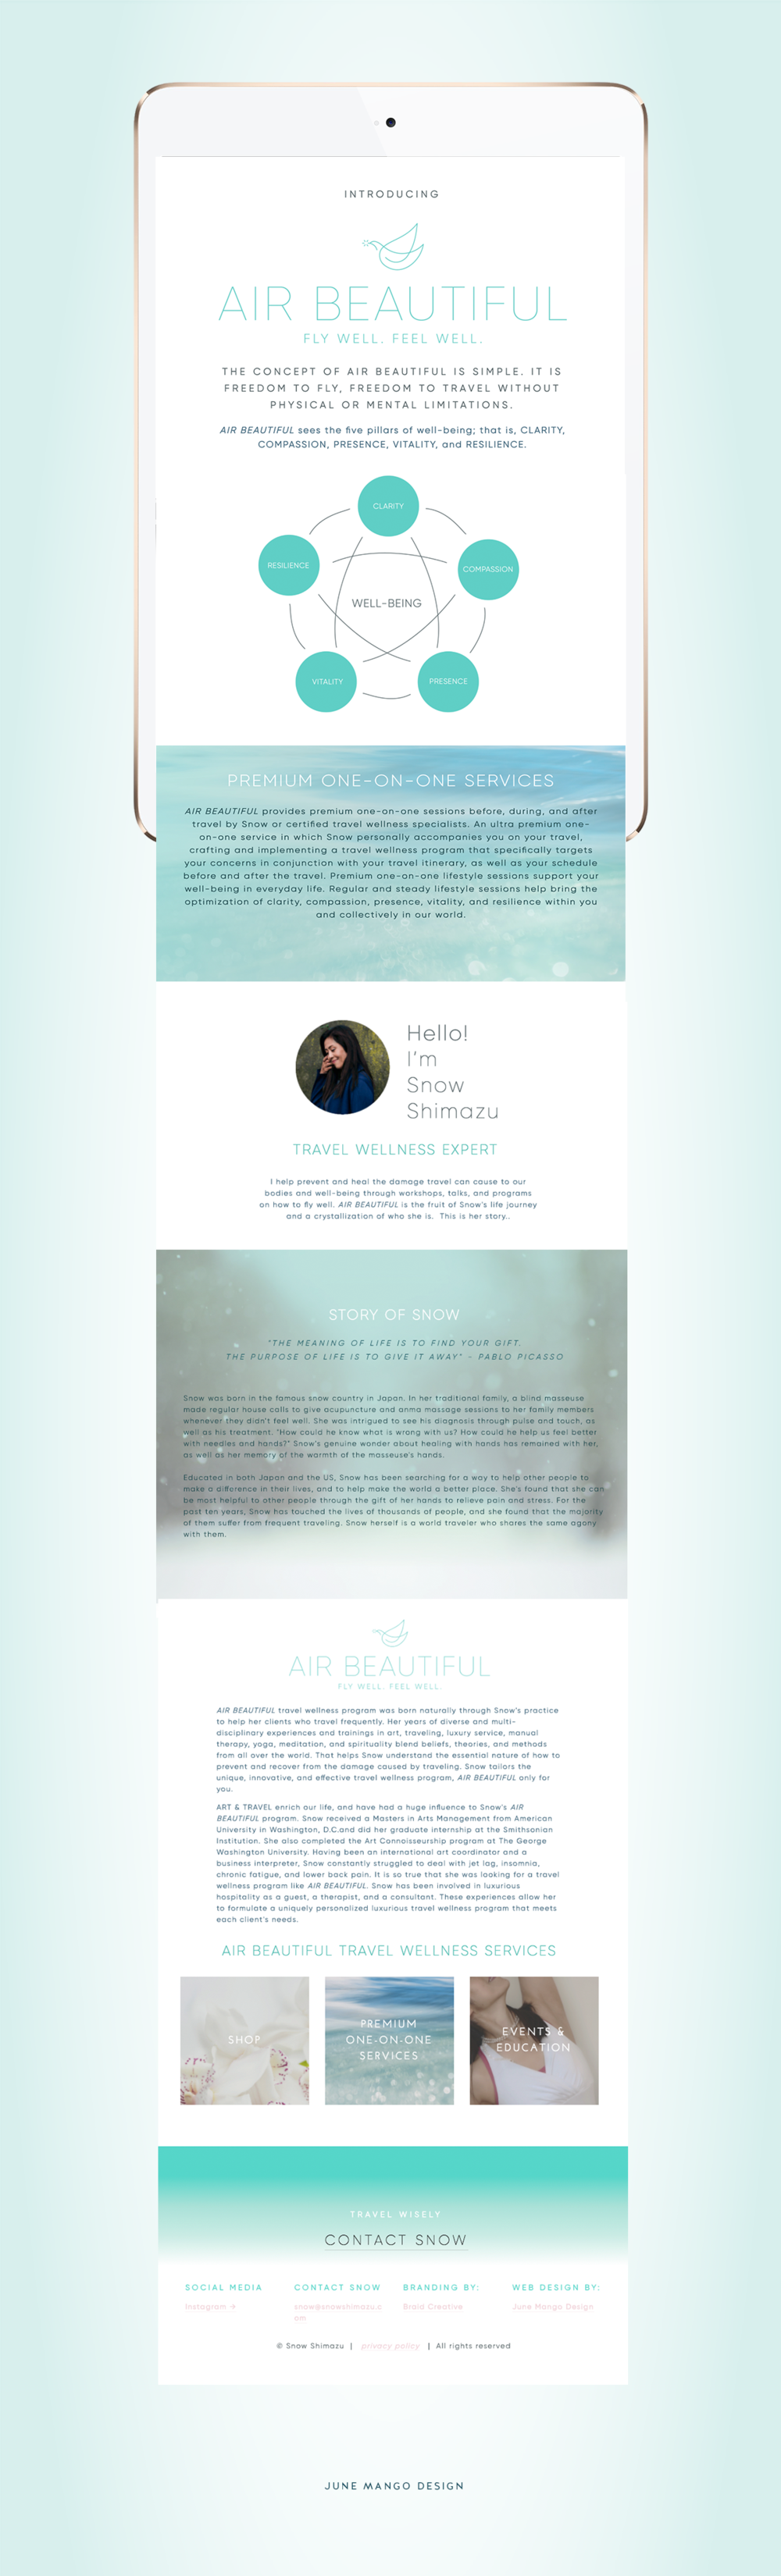 Snow-yoga-website-design-holistic-health-webdesign.png